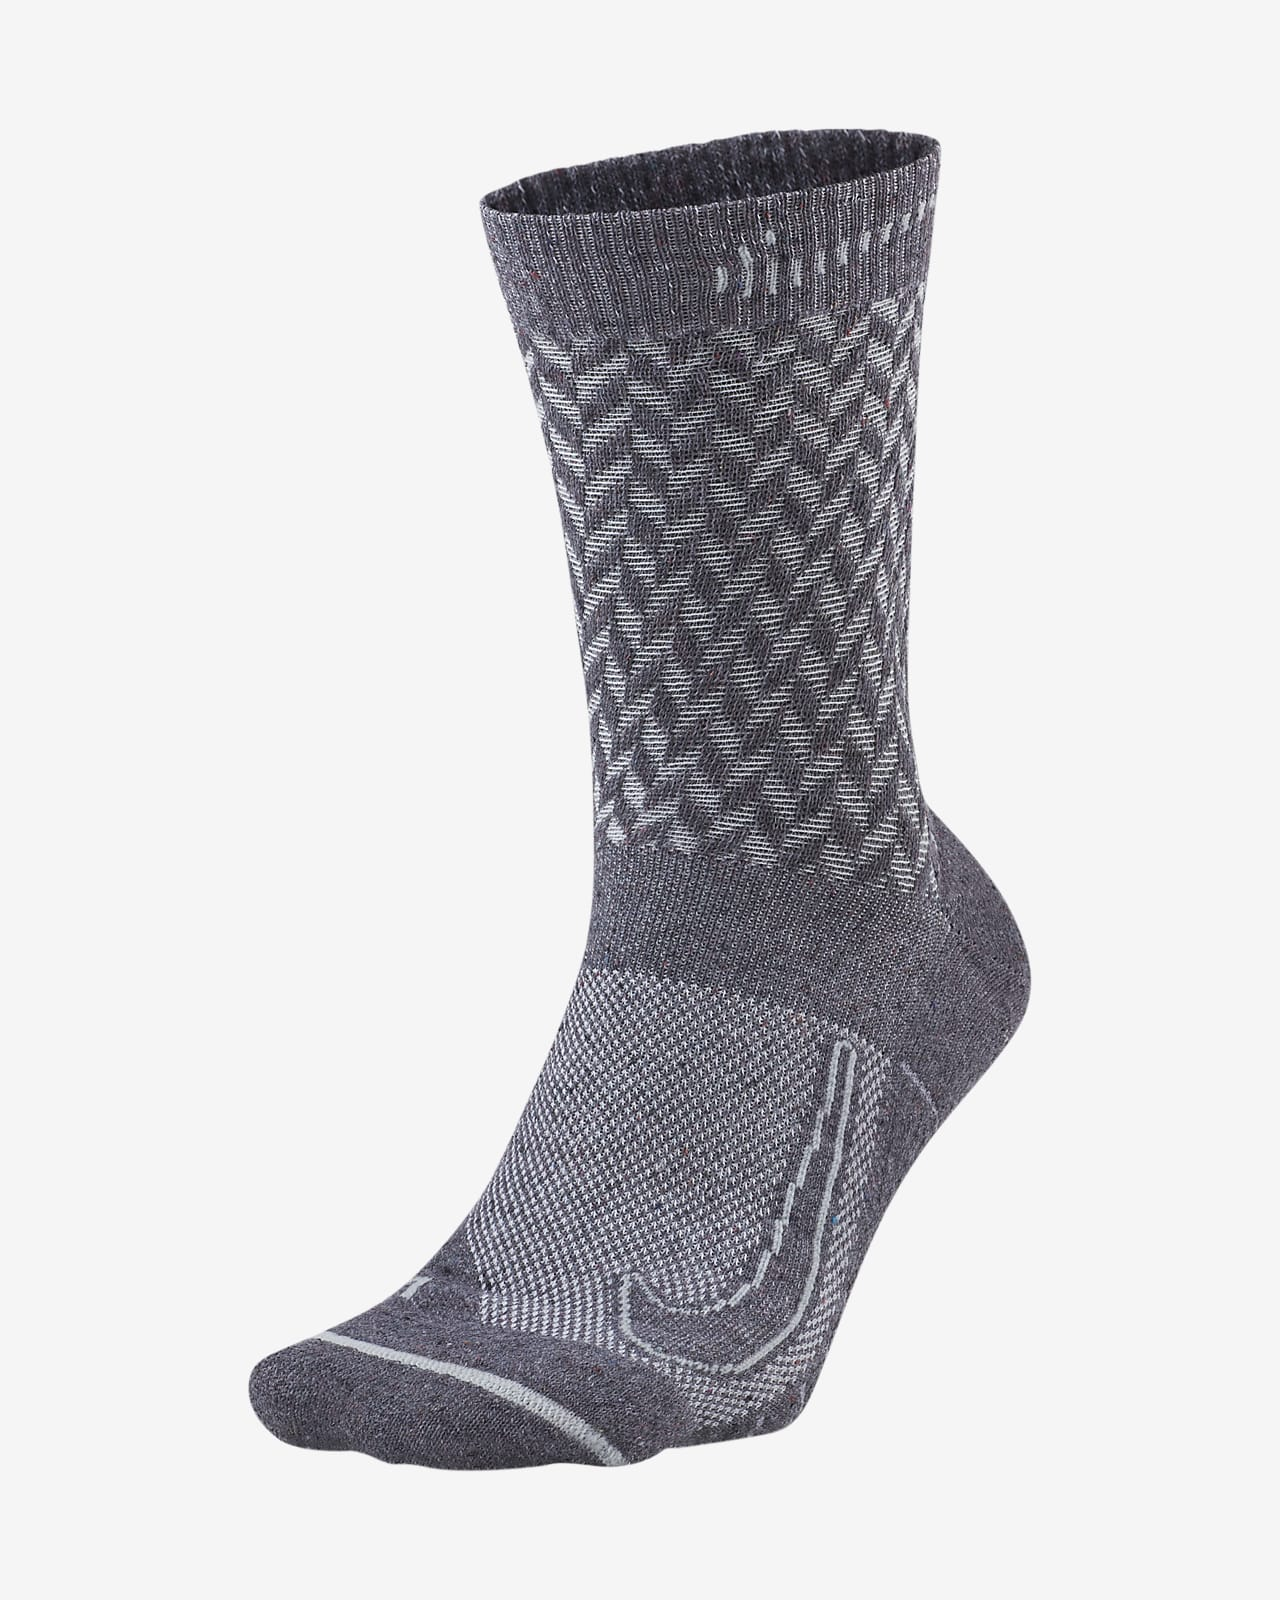 Calcetines largos Nike Multiplier